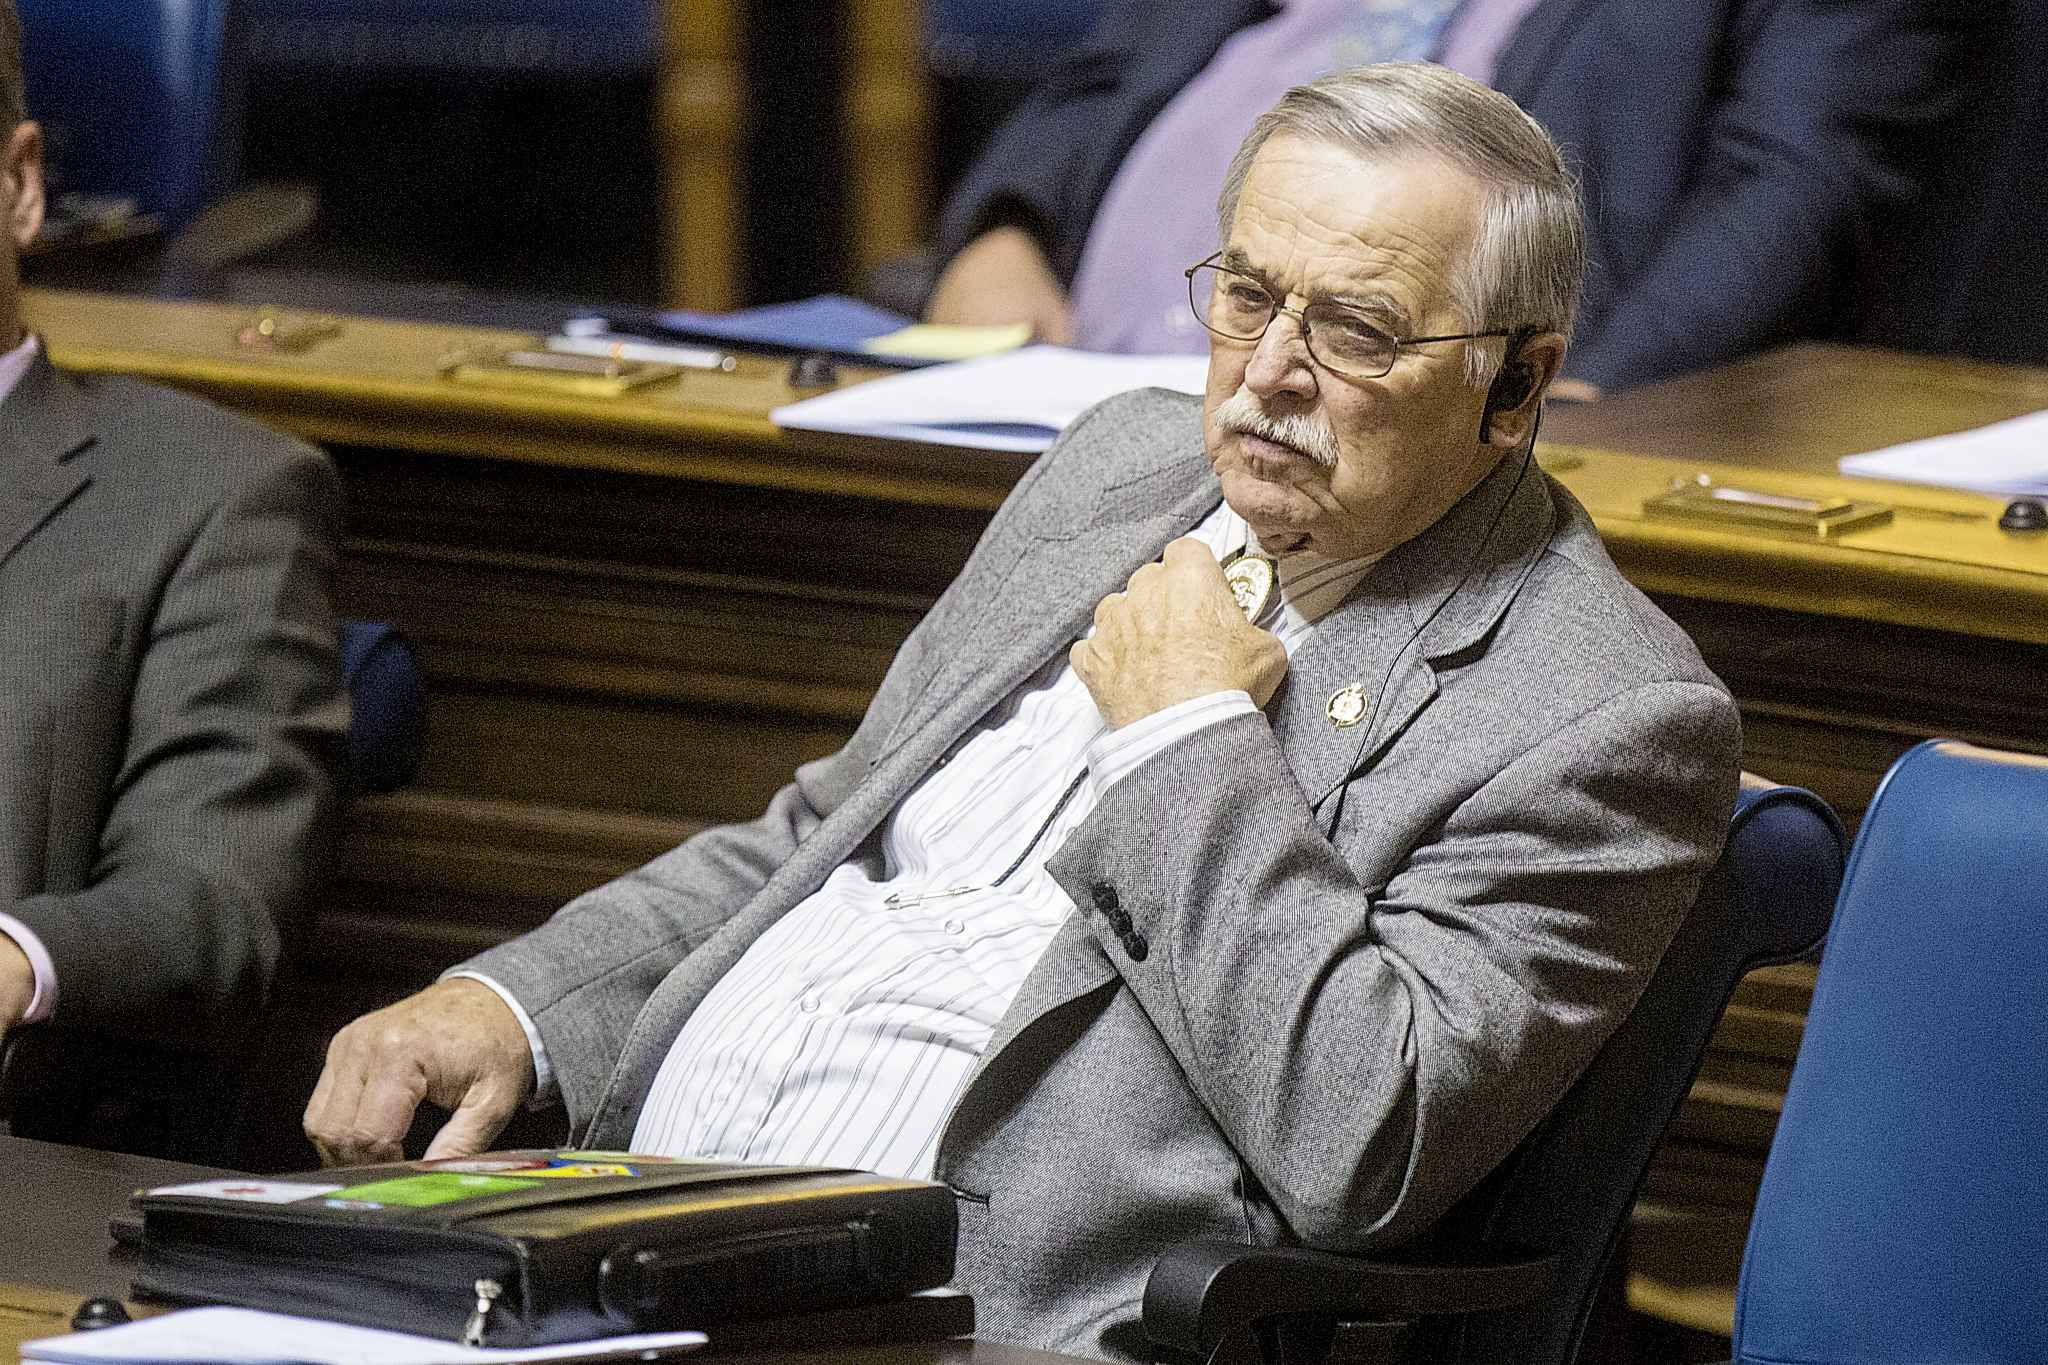 PC MLA Cliff Graydon during question period at the Manitoba Legislative Building in Winnipeg on Thursday.